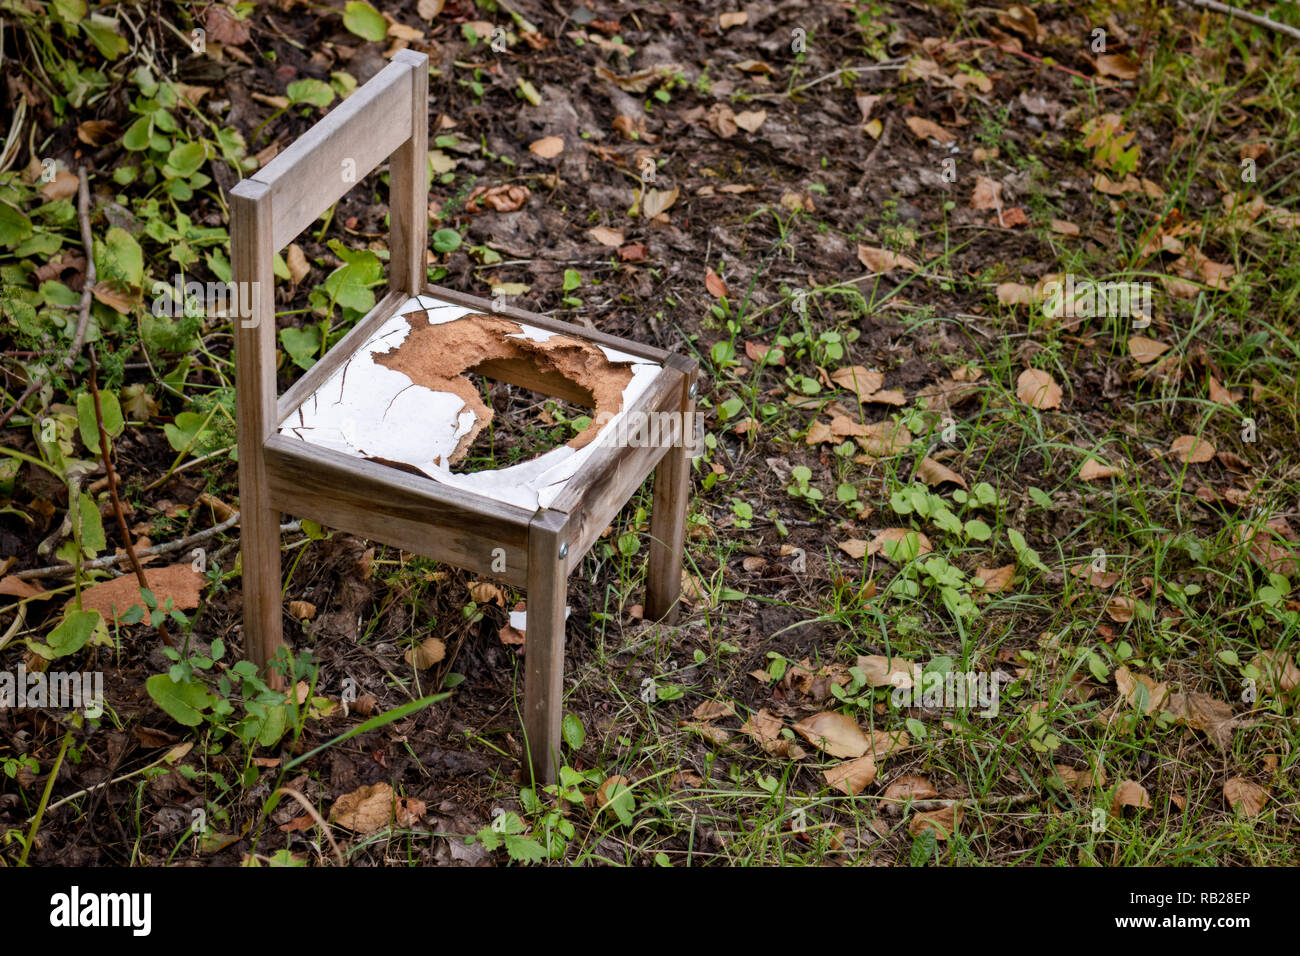 Broken and abandoned chair in the woods - Stock Image